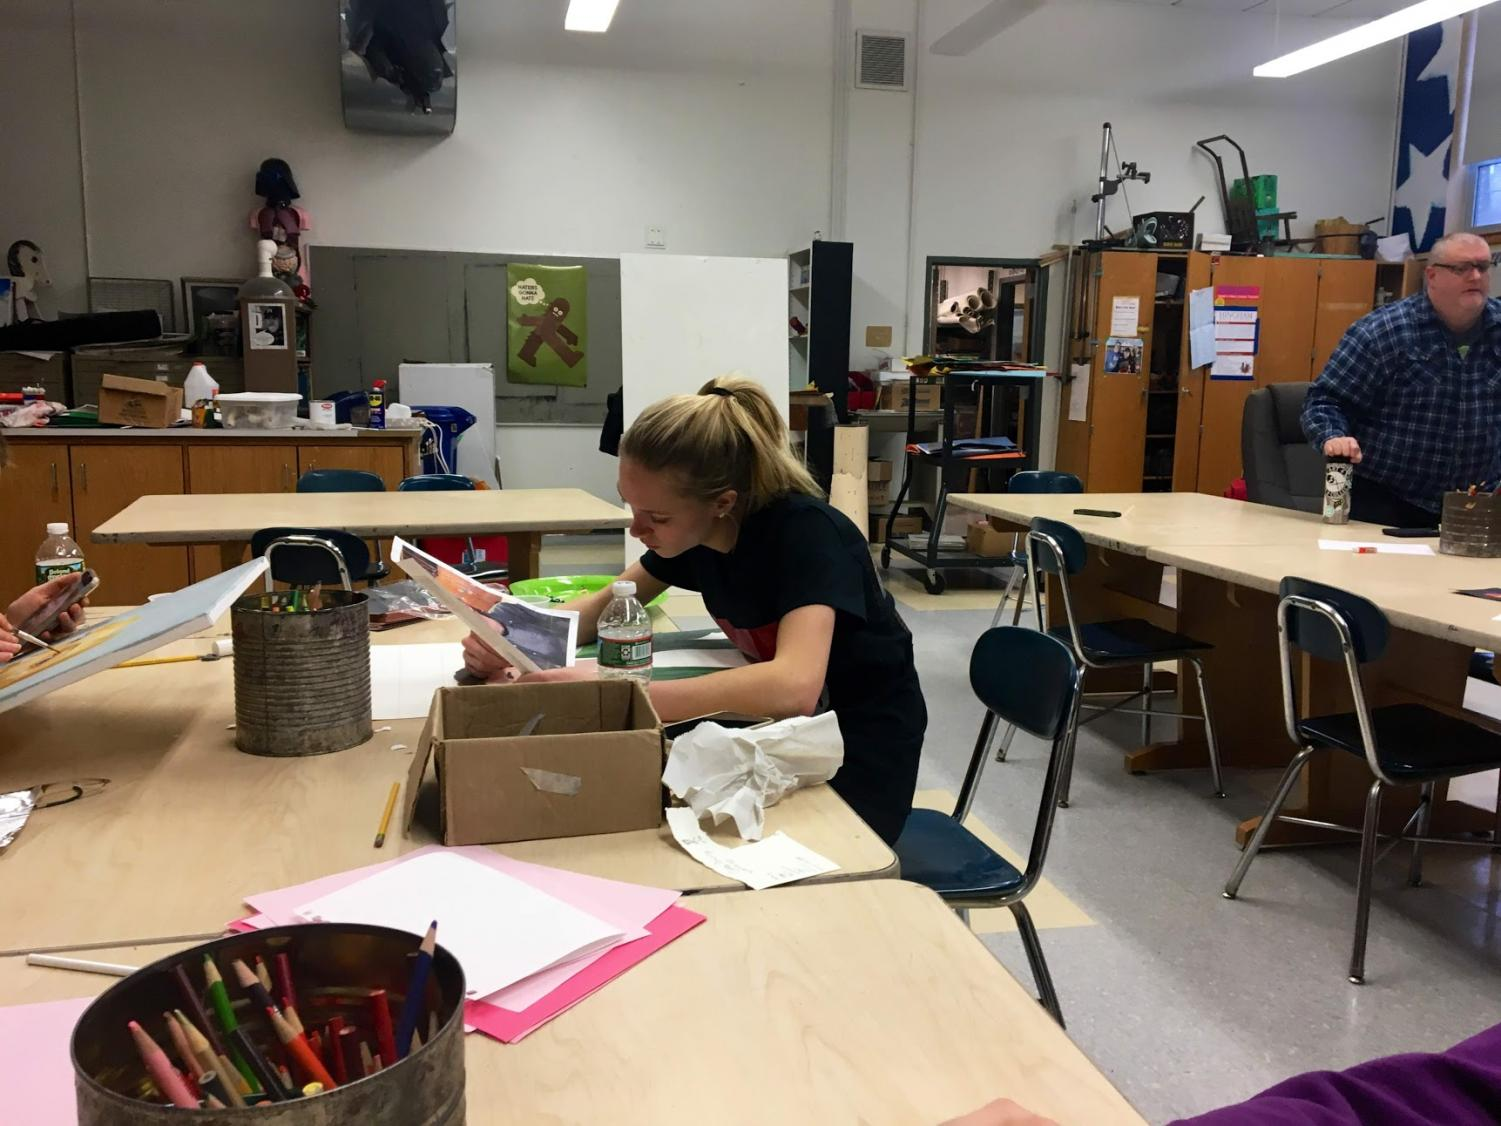 Student Peyton Belsher hard at work during an art class.